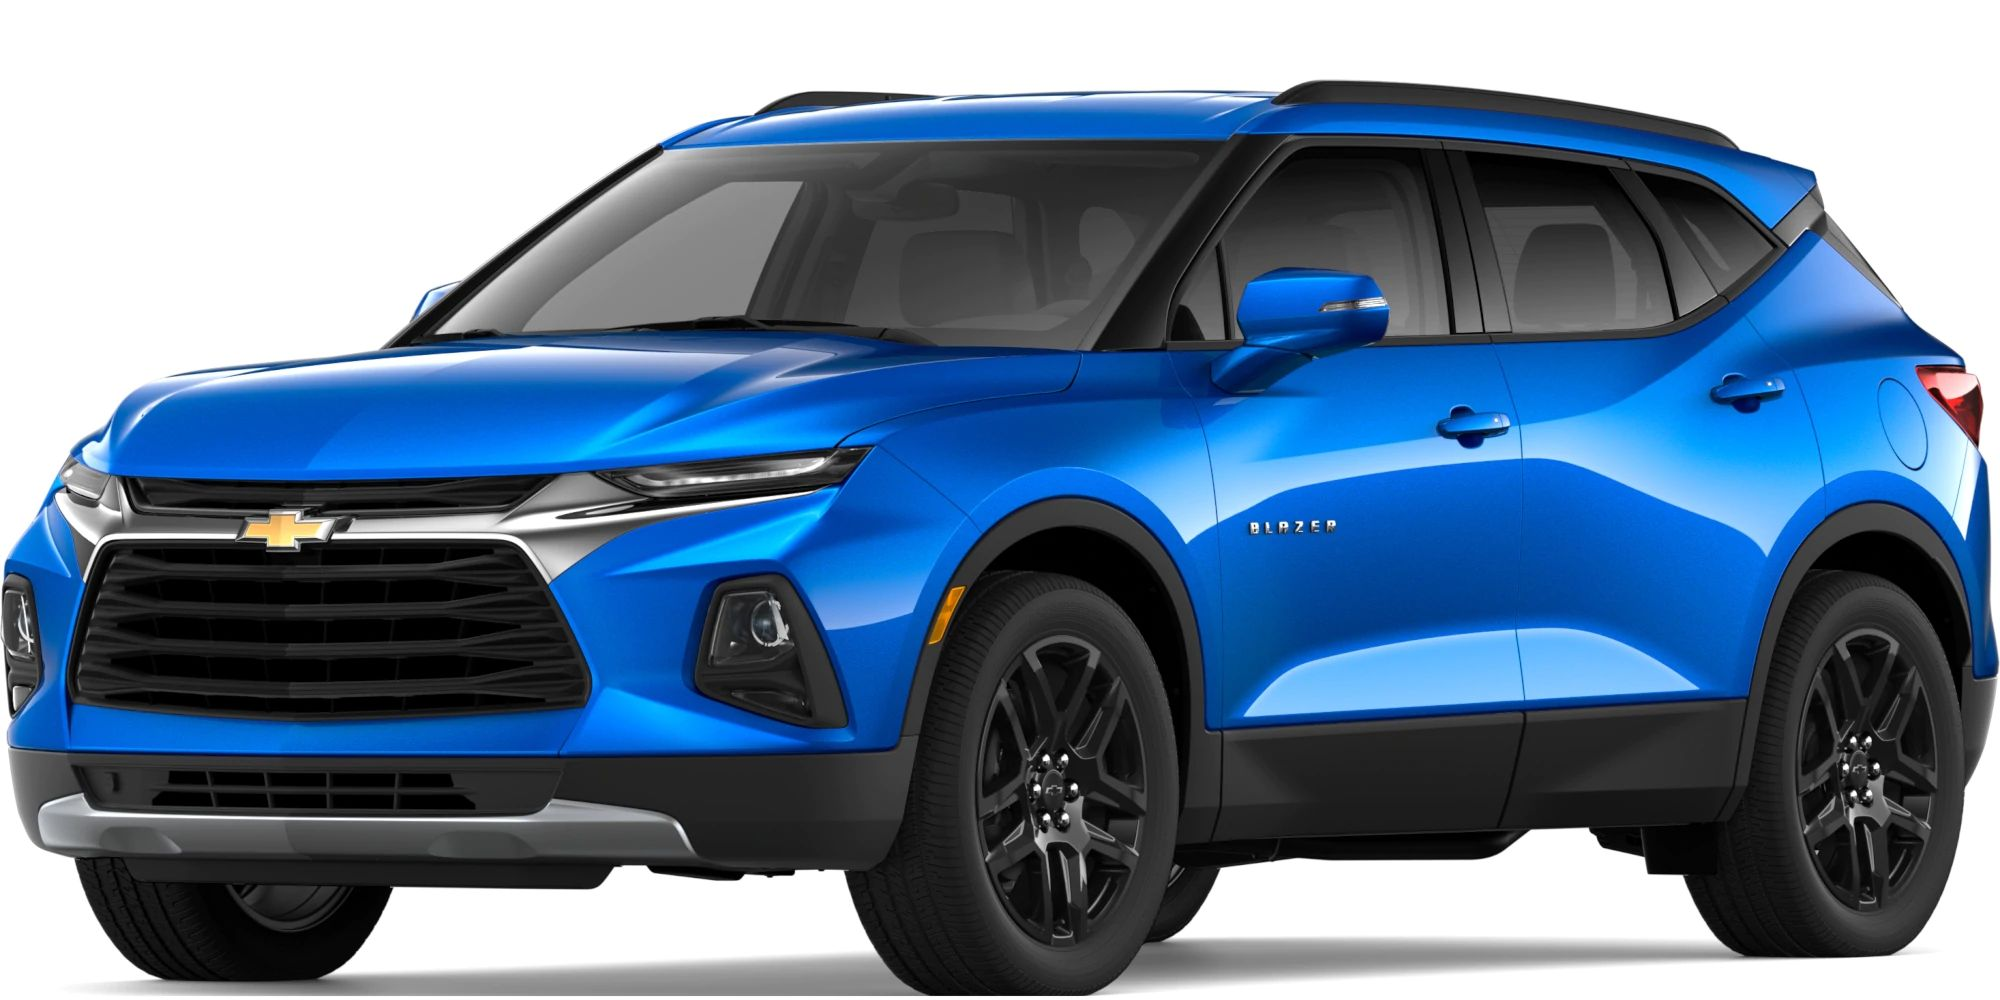 2019 Chevy Blazer Exterior Driver Side Front Profile in Kinetic Blue Metallic